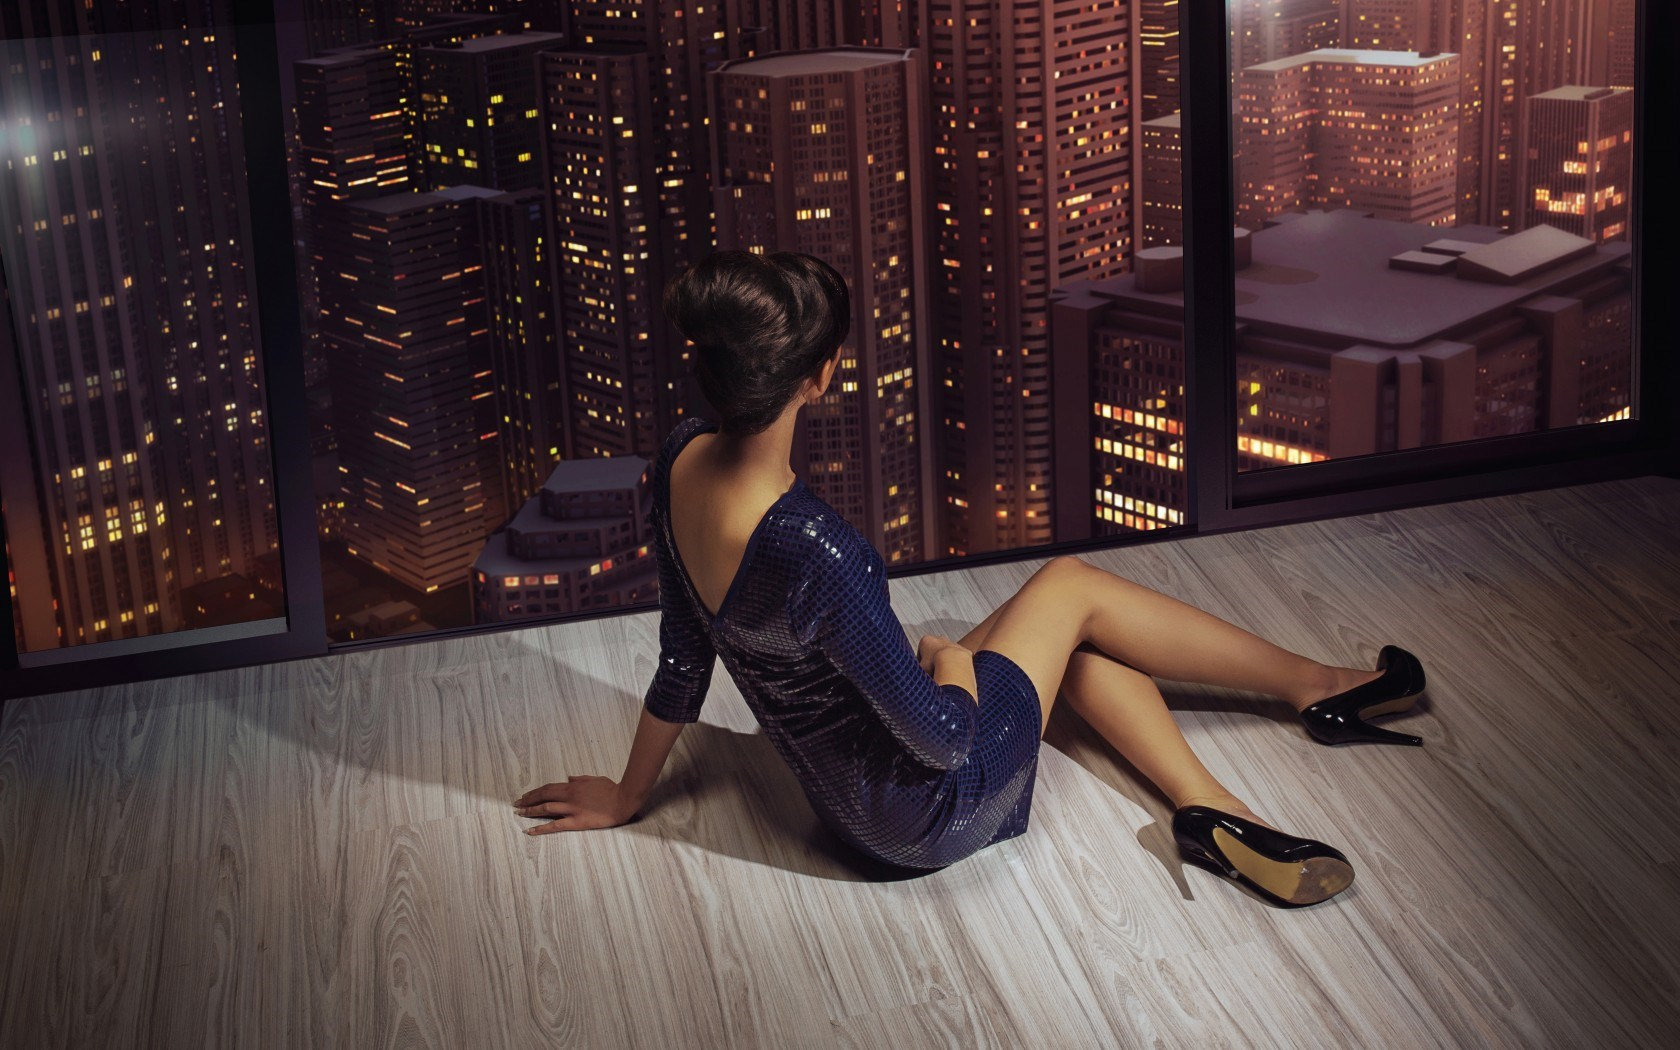 Girl Heels Dress Hairstyle Fashion Window City